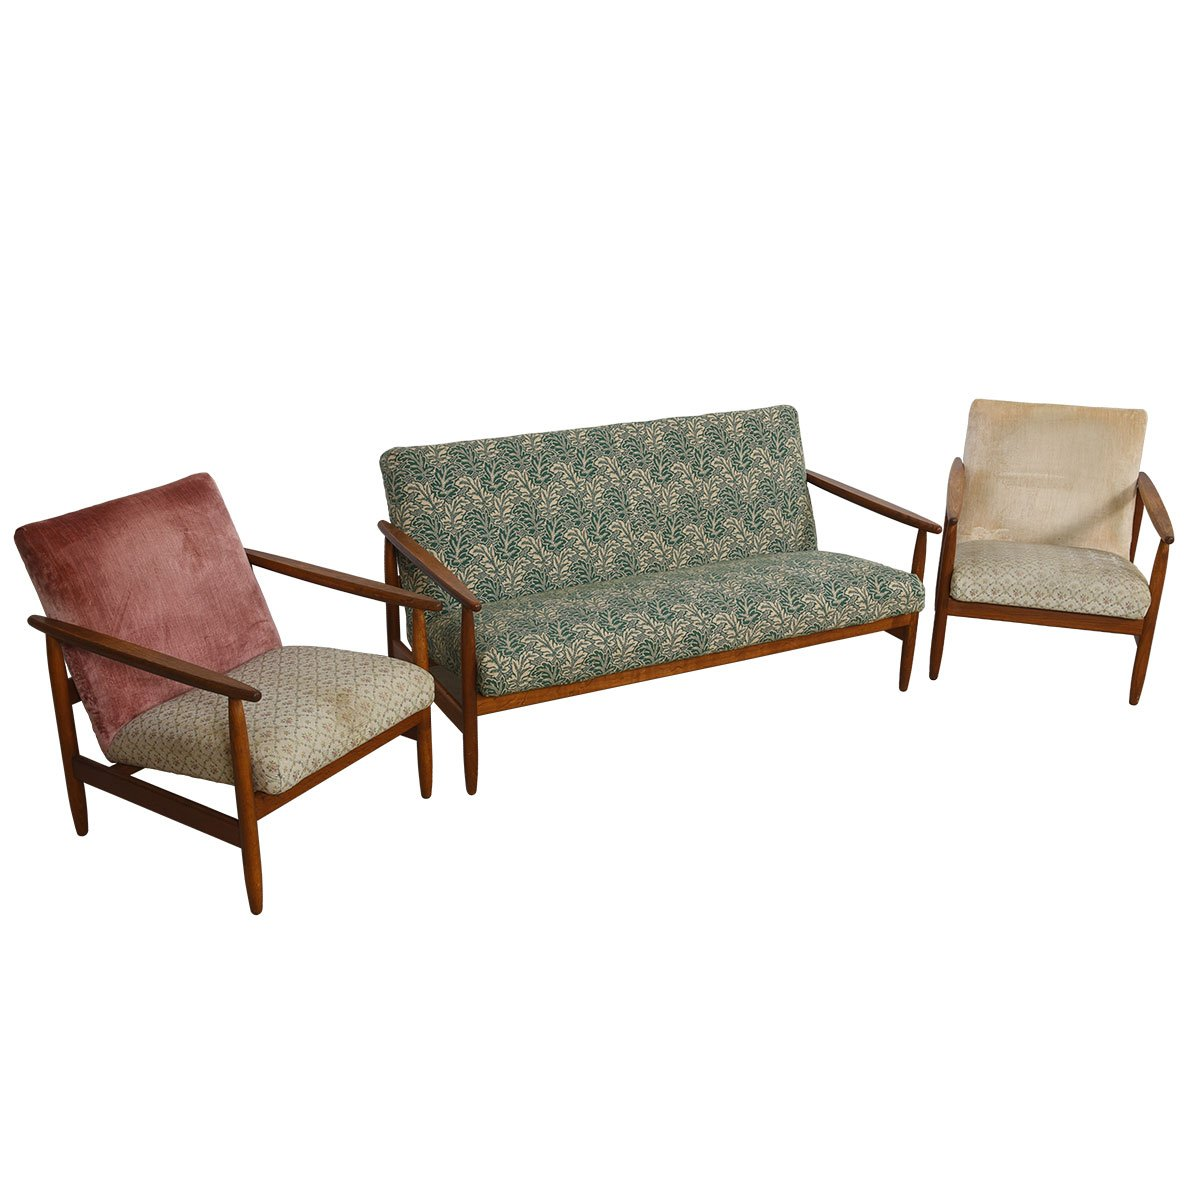 Rare Eyvind Johansson for FDB J65 Danish Set w/ Loveseat & Pr Lounge Chairs